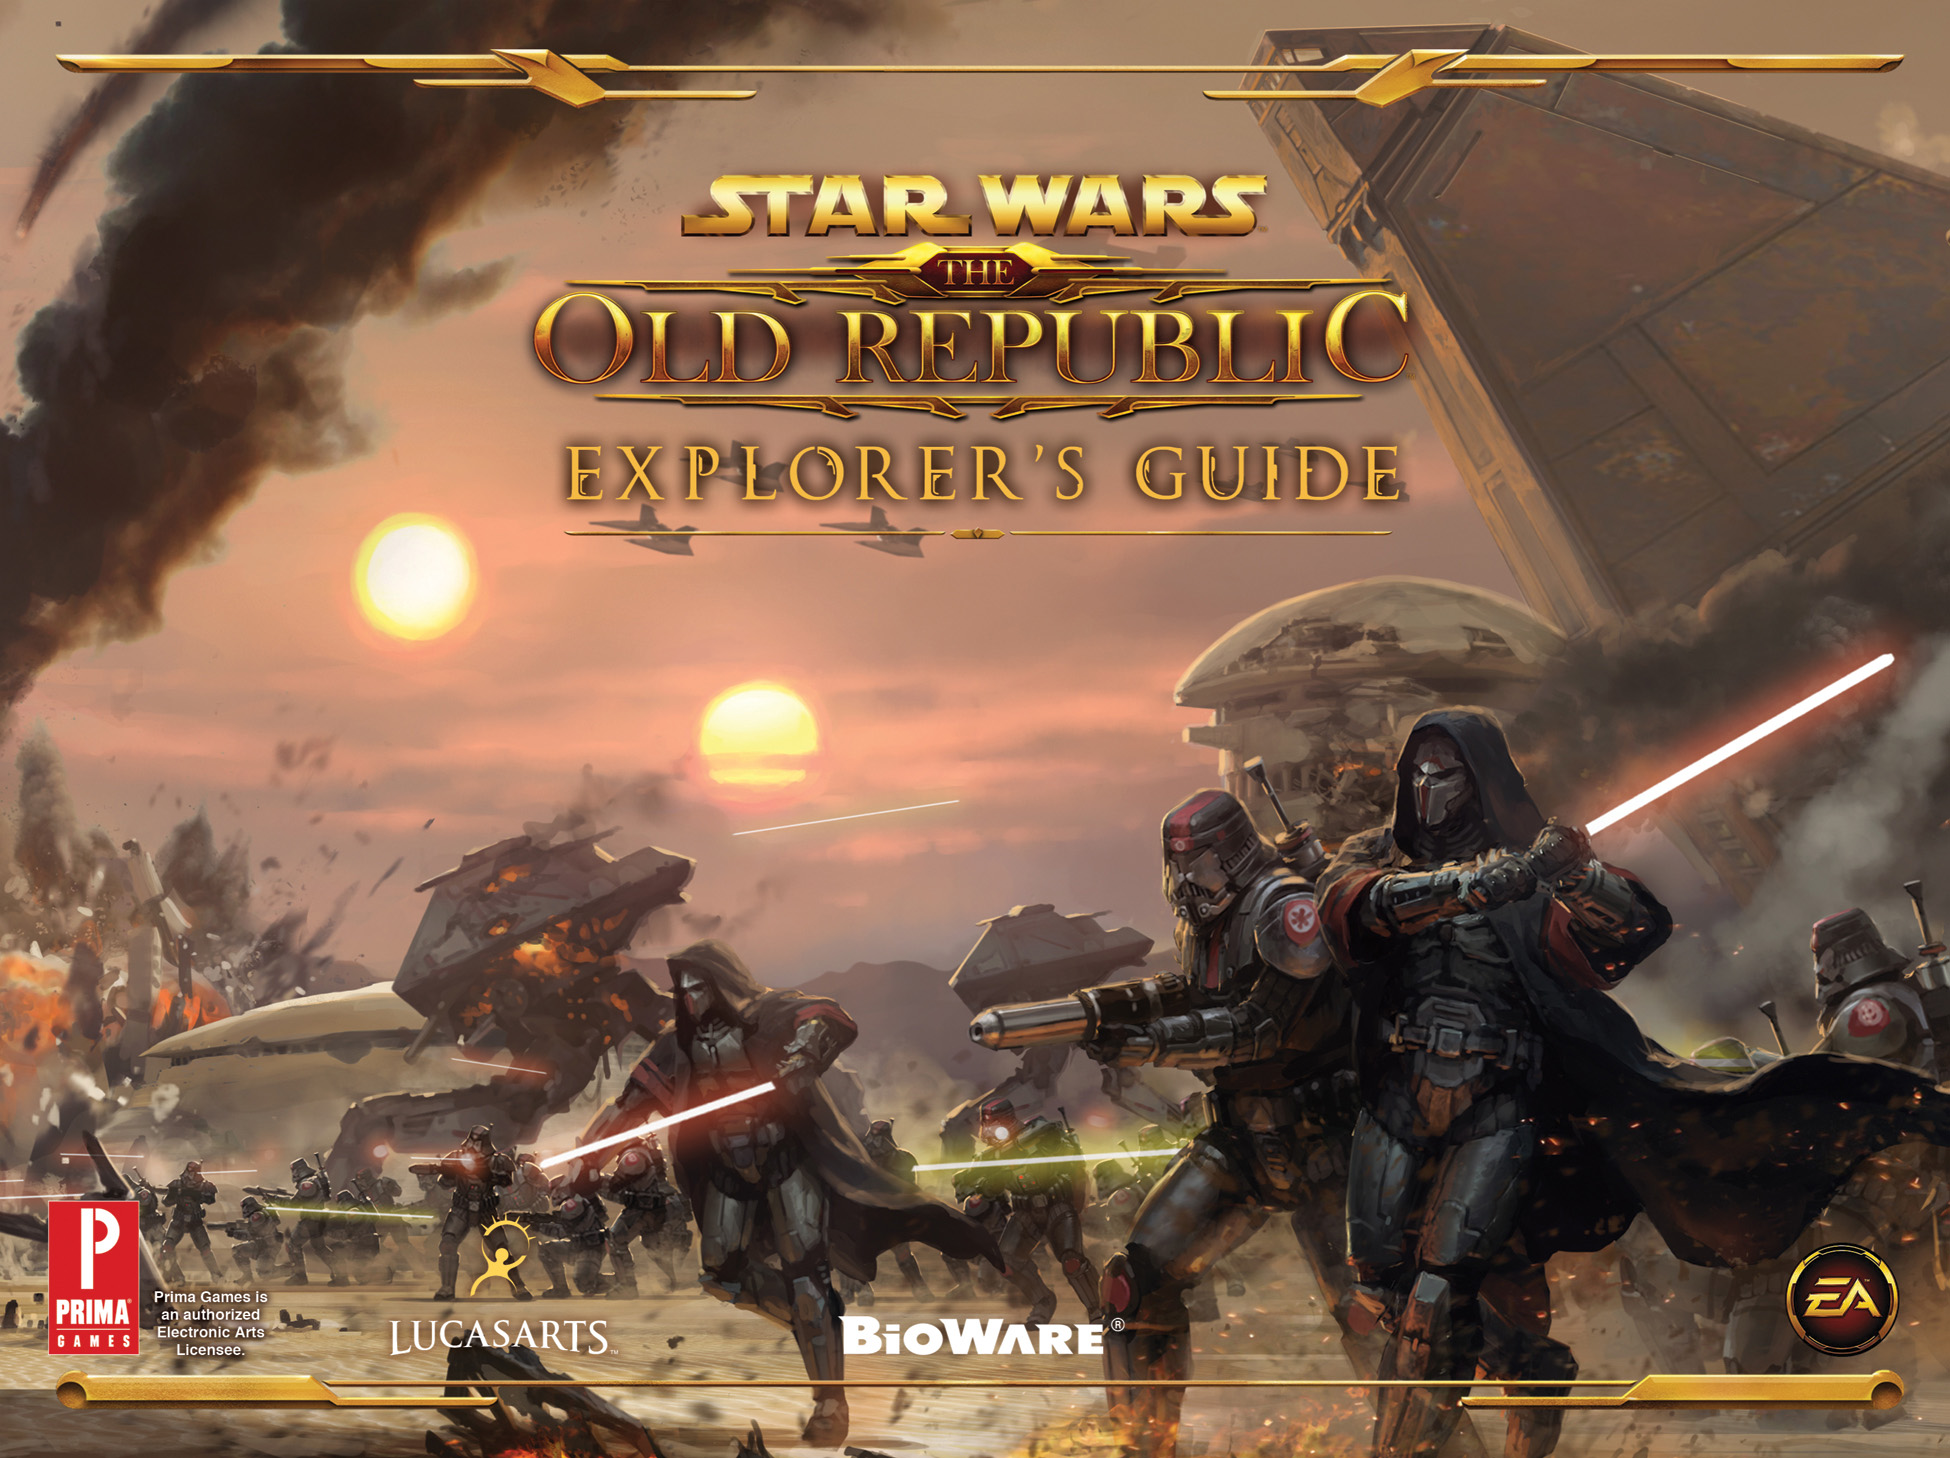 Star Wars The Old Republic Explorers Guide Wookieepedia Fandom